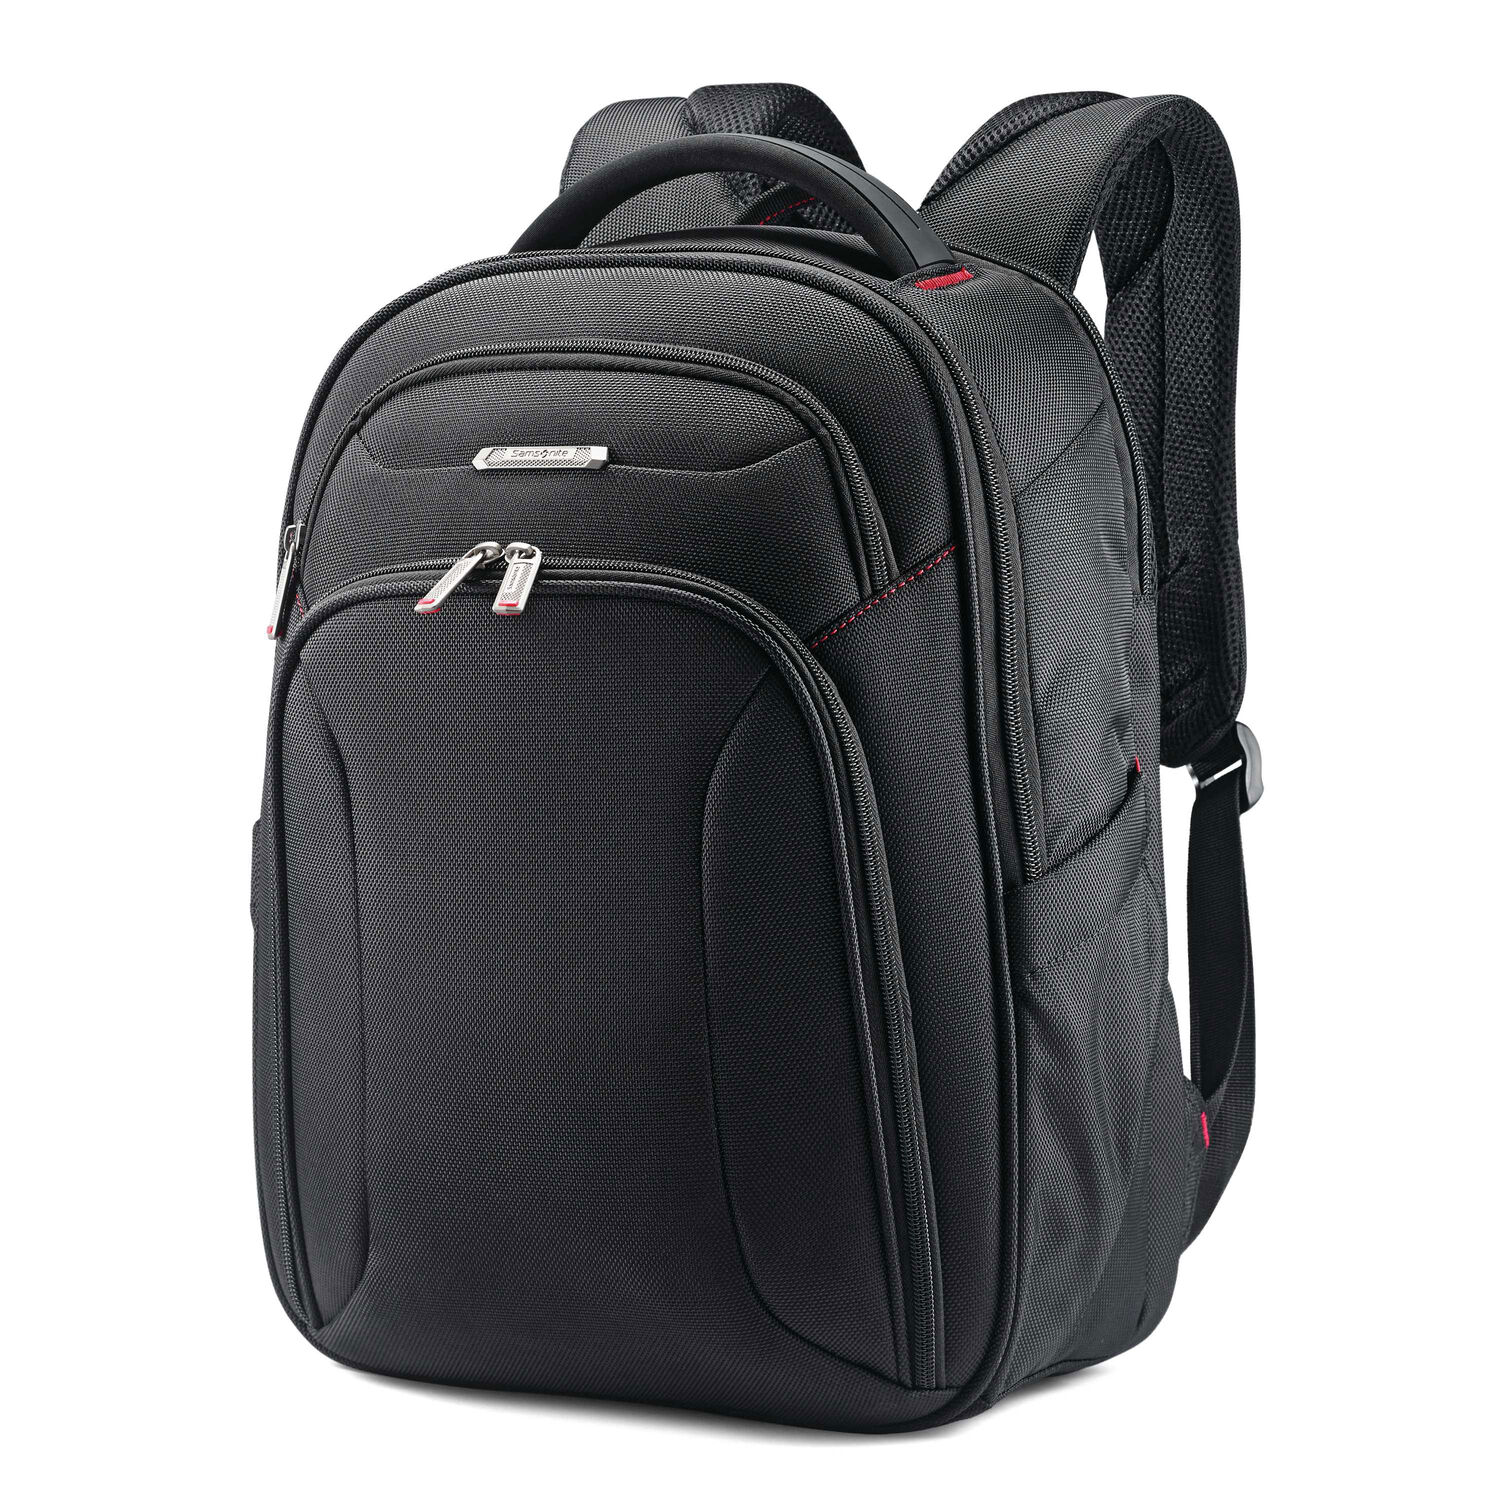 83fe2804084 Samsonite Xenon 3.0 Slim Backpack in the color Black.